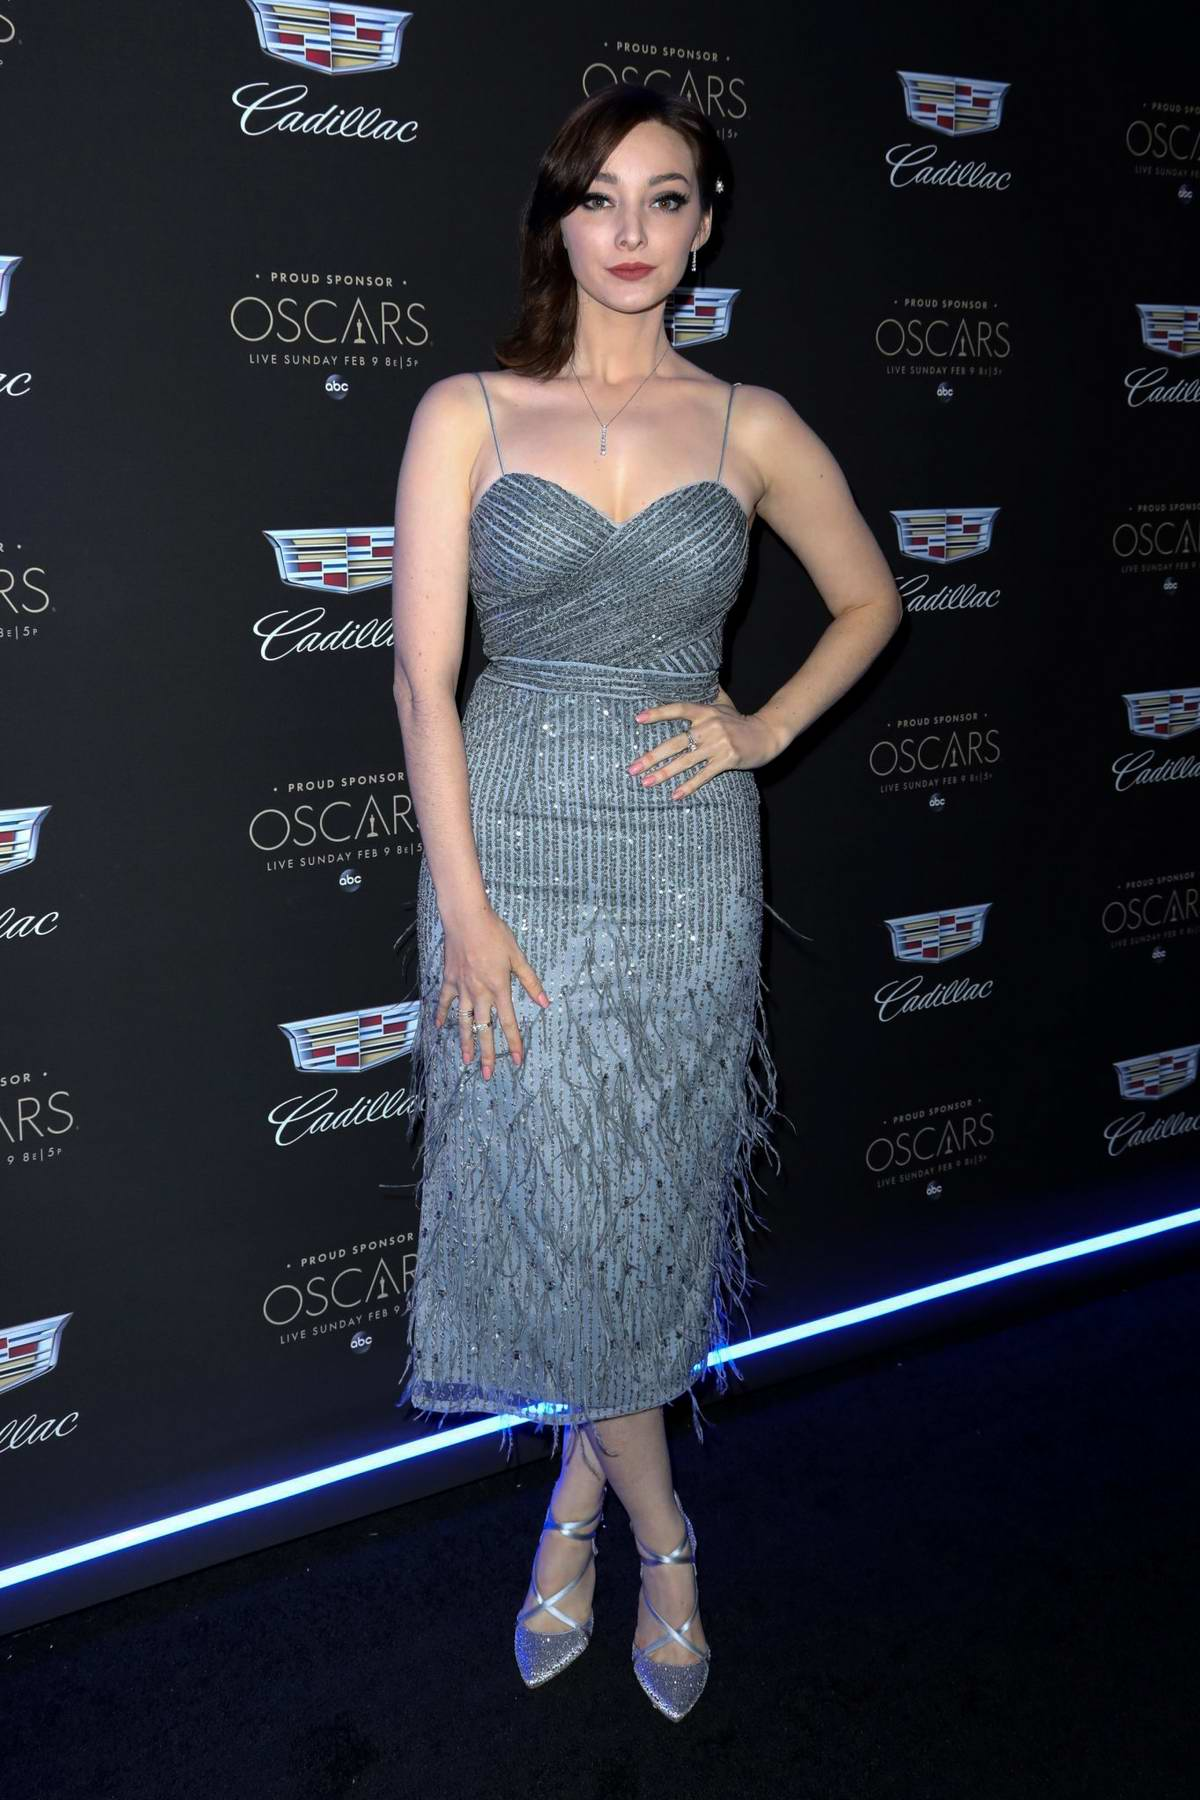 Emma Dumont attends as Cadillac Celebrates the 92nd Annual Academy Awards in Los Angeles